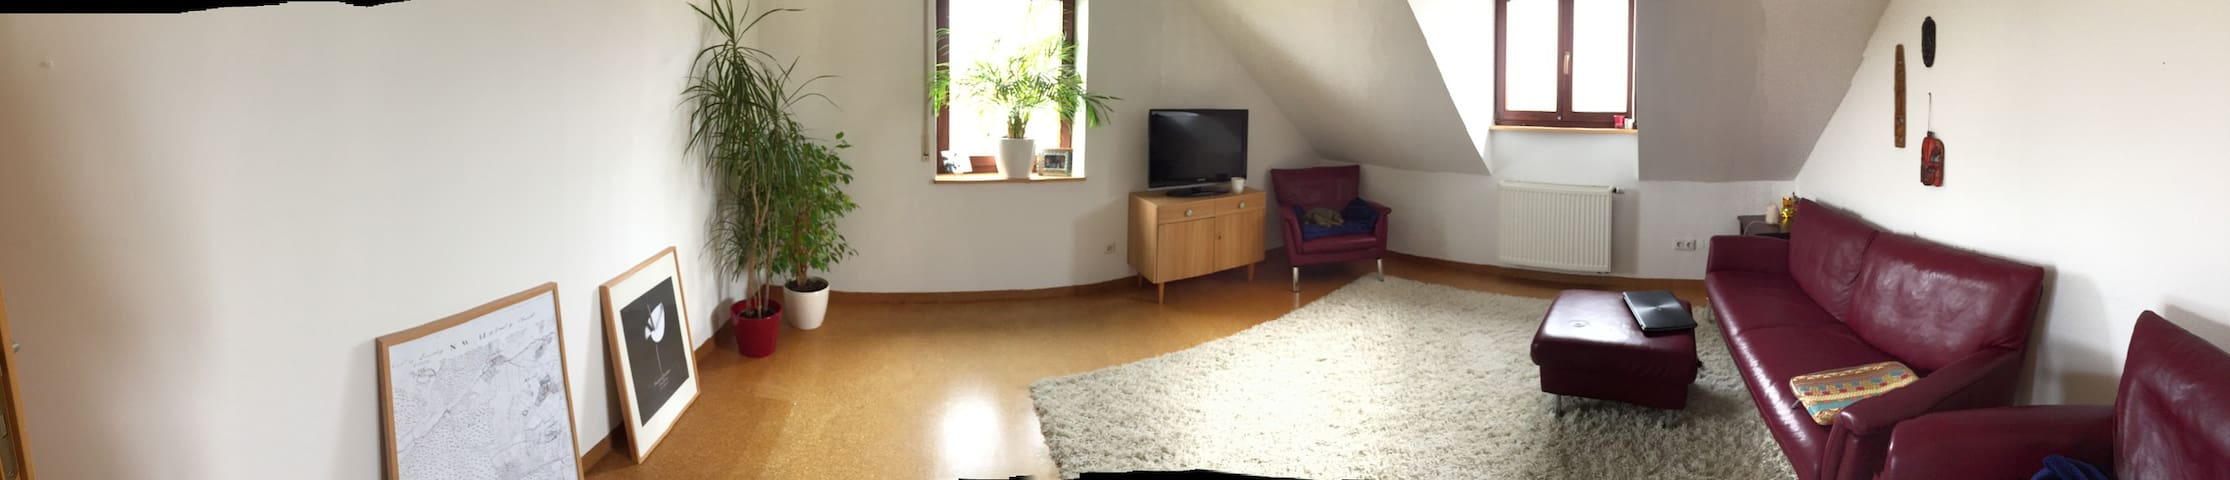 Living in a small village 5 min. from Hilpoltstein - Hilpoltstein - Apartament